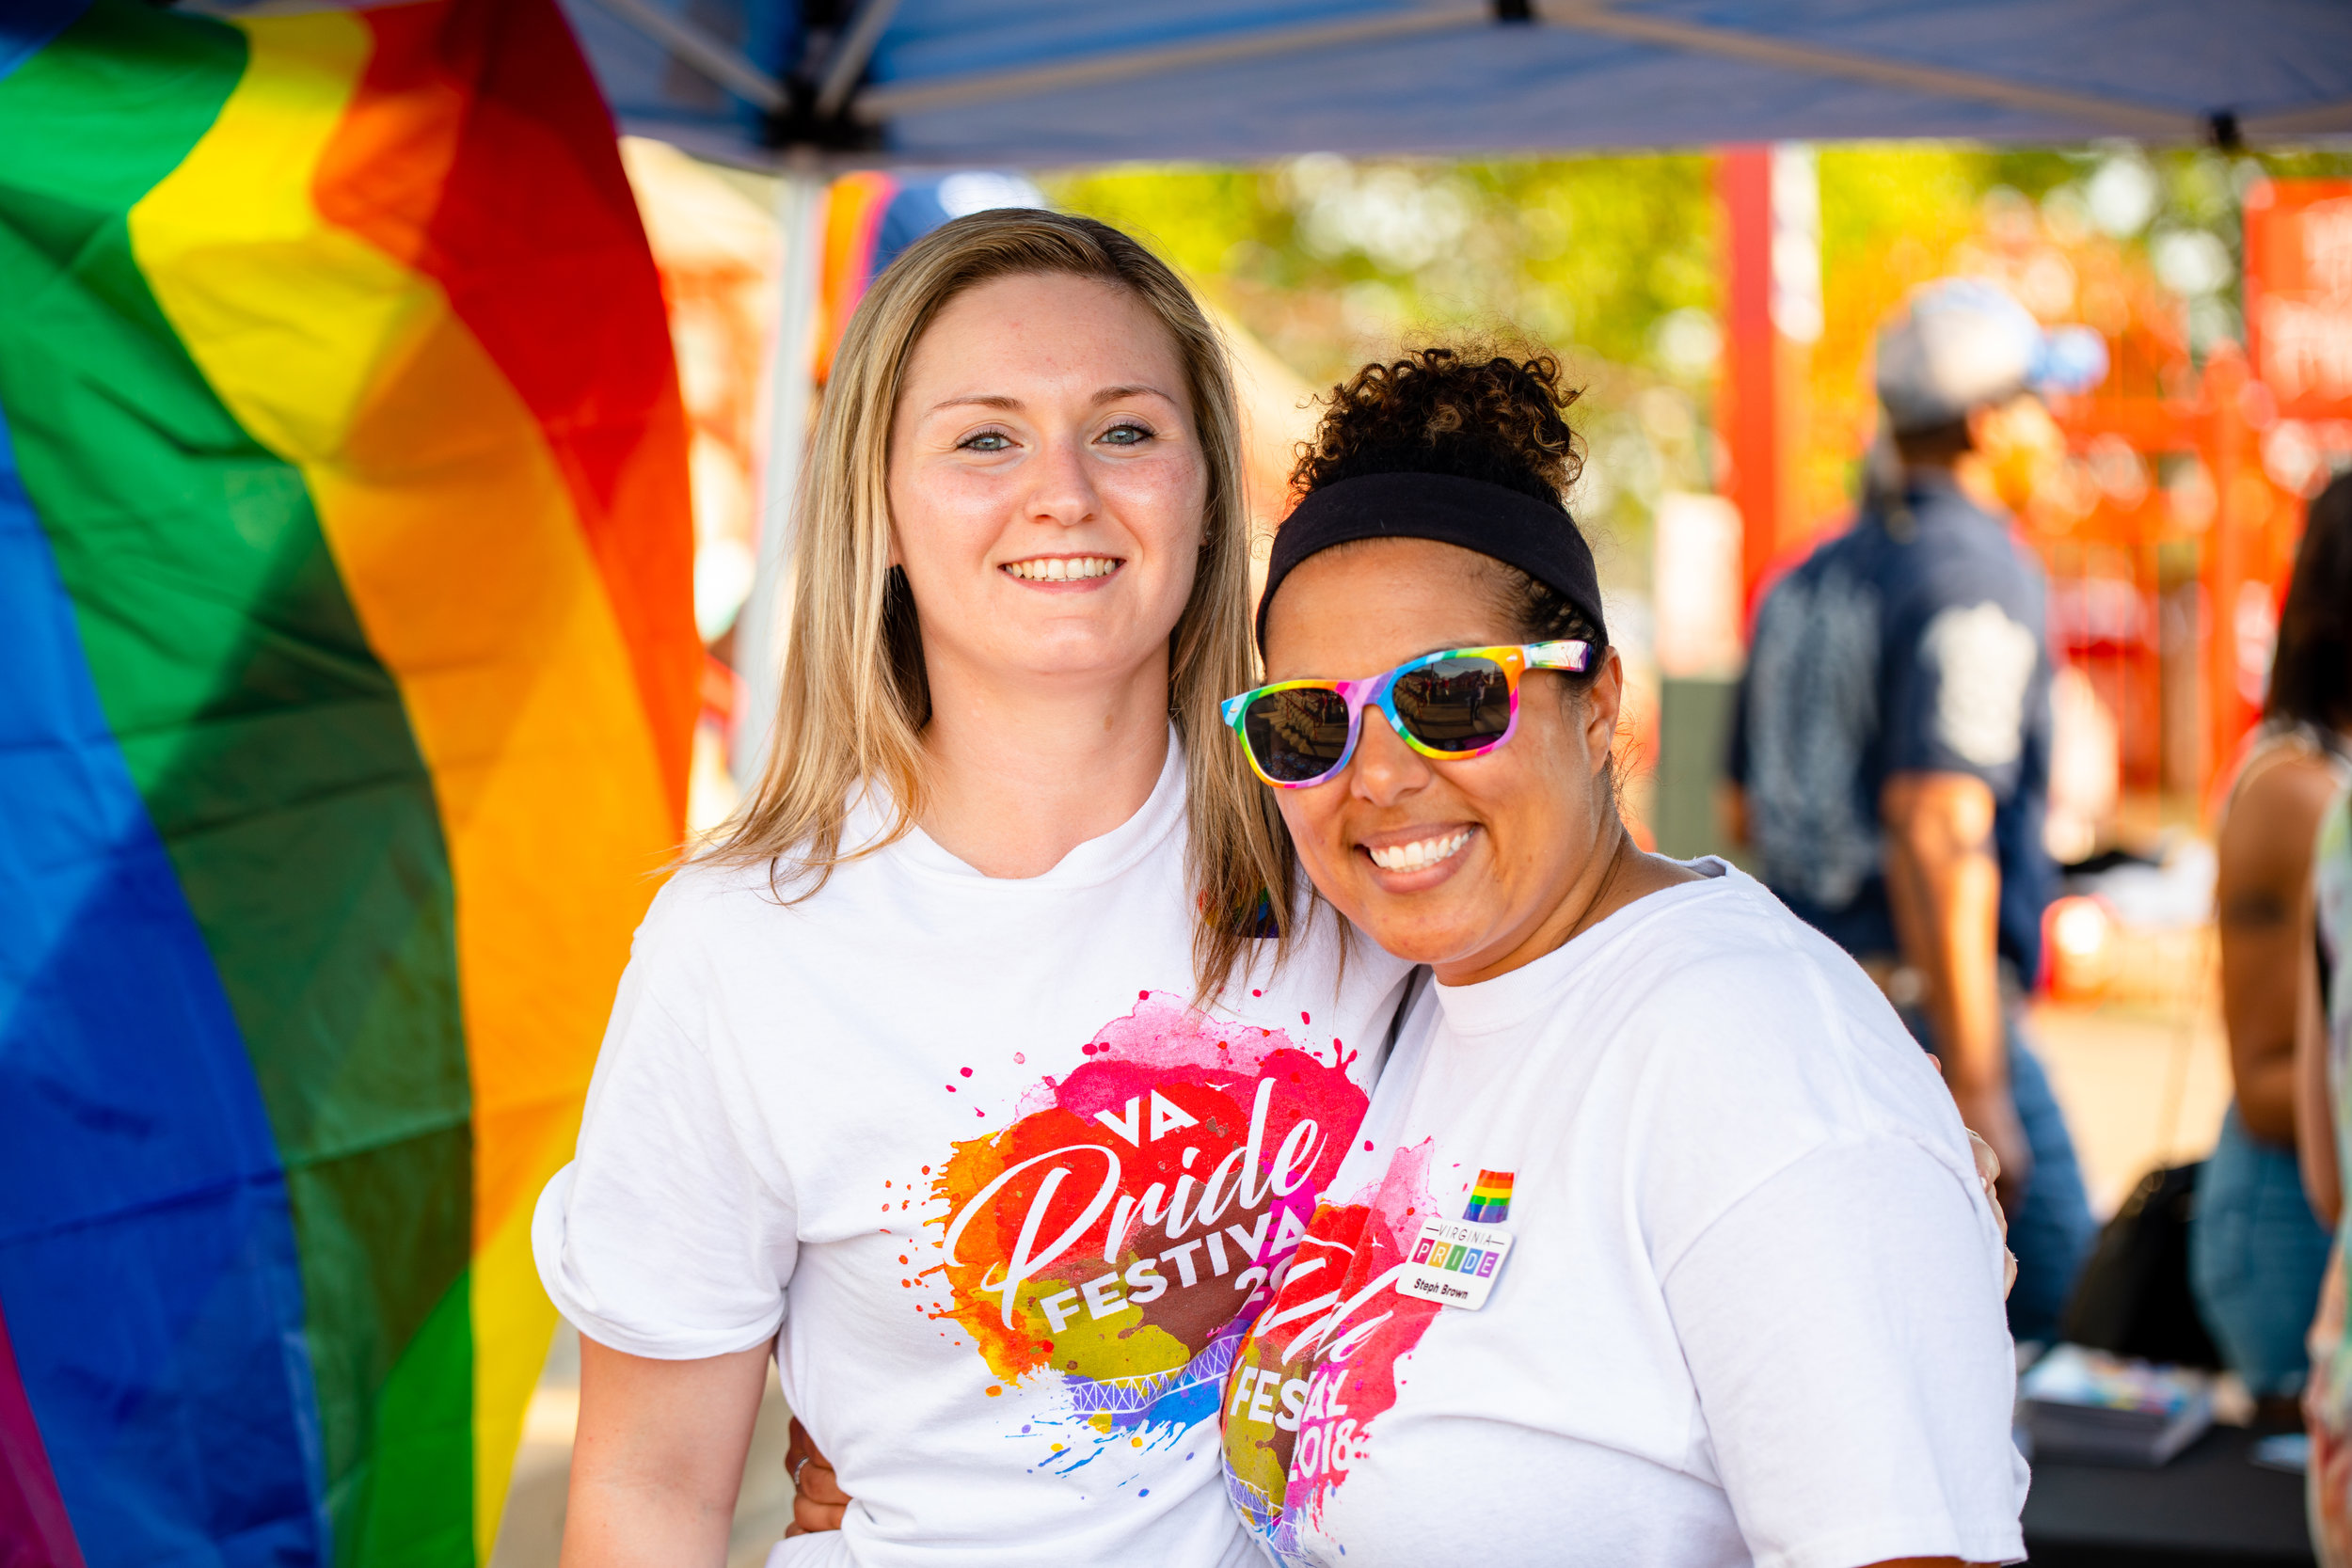 2019_0627_VirginiaPride_Squirrels_PrideNight_105.jpg